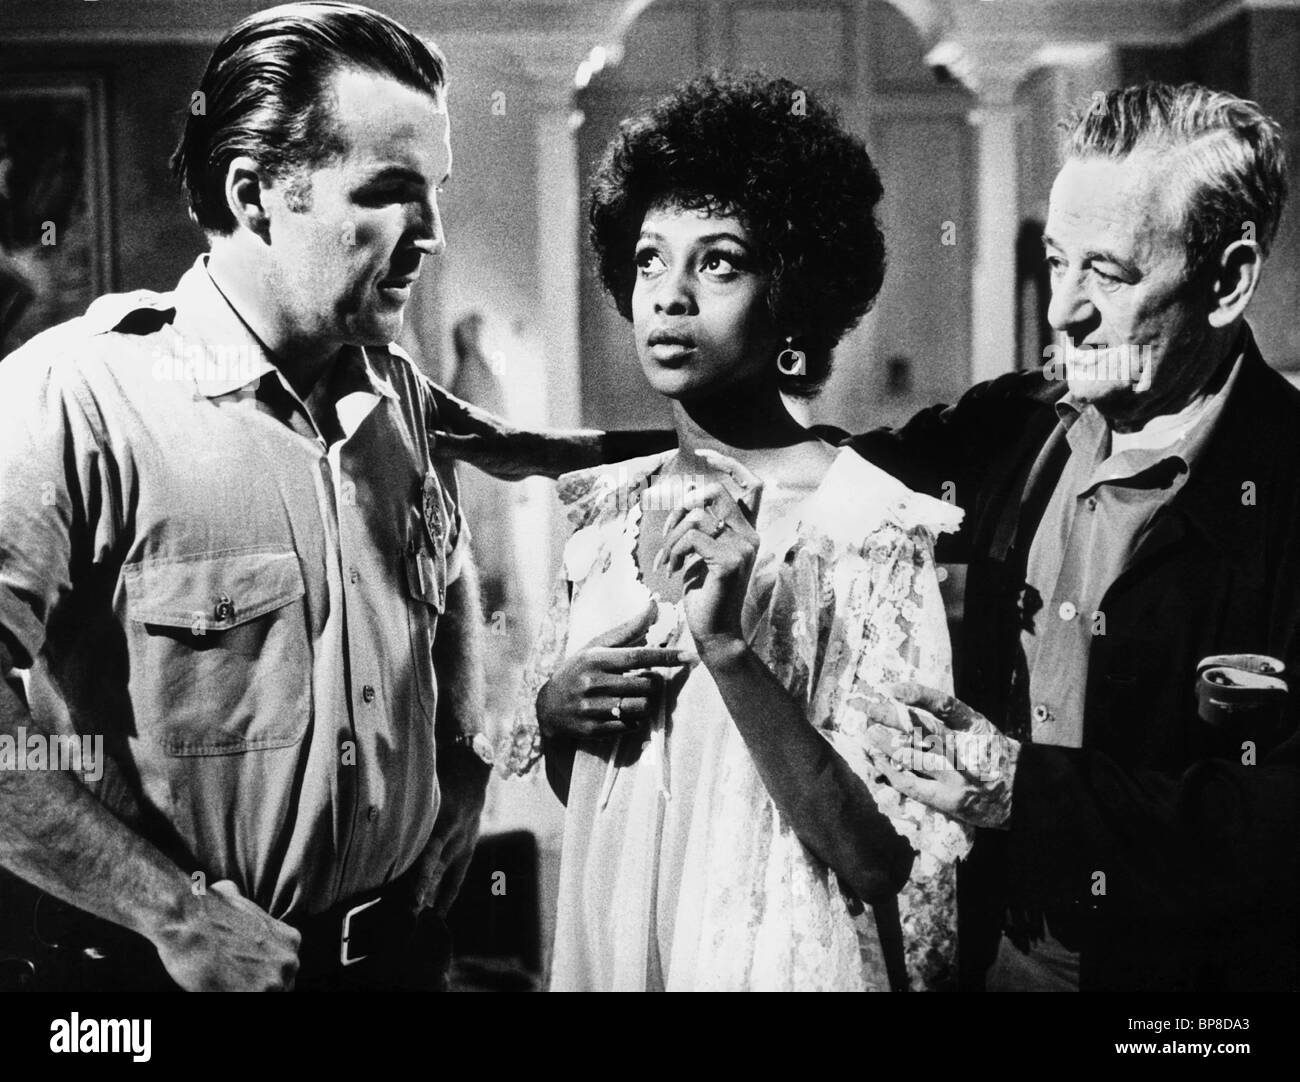 Images Of Lola Falana Simple anthony zerbe lola falana william wyler the liberation of l.b.